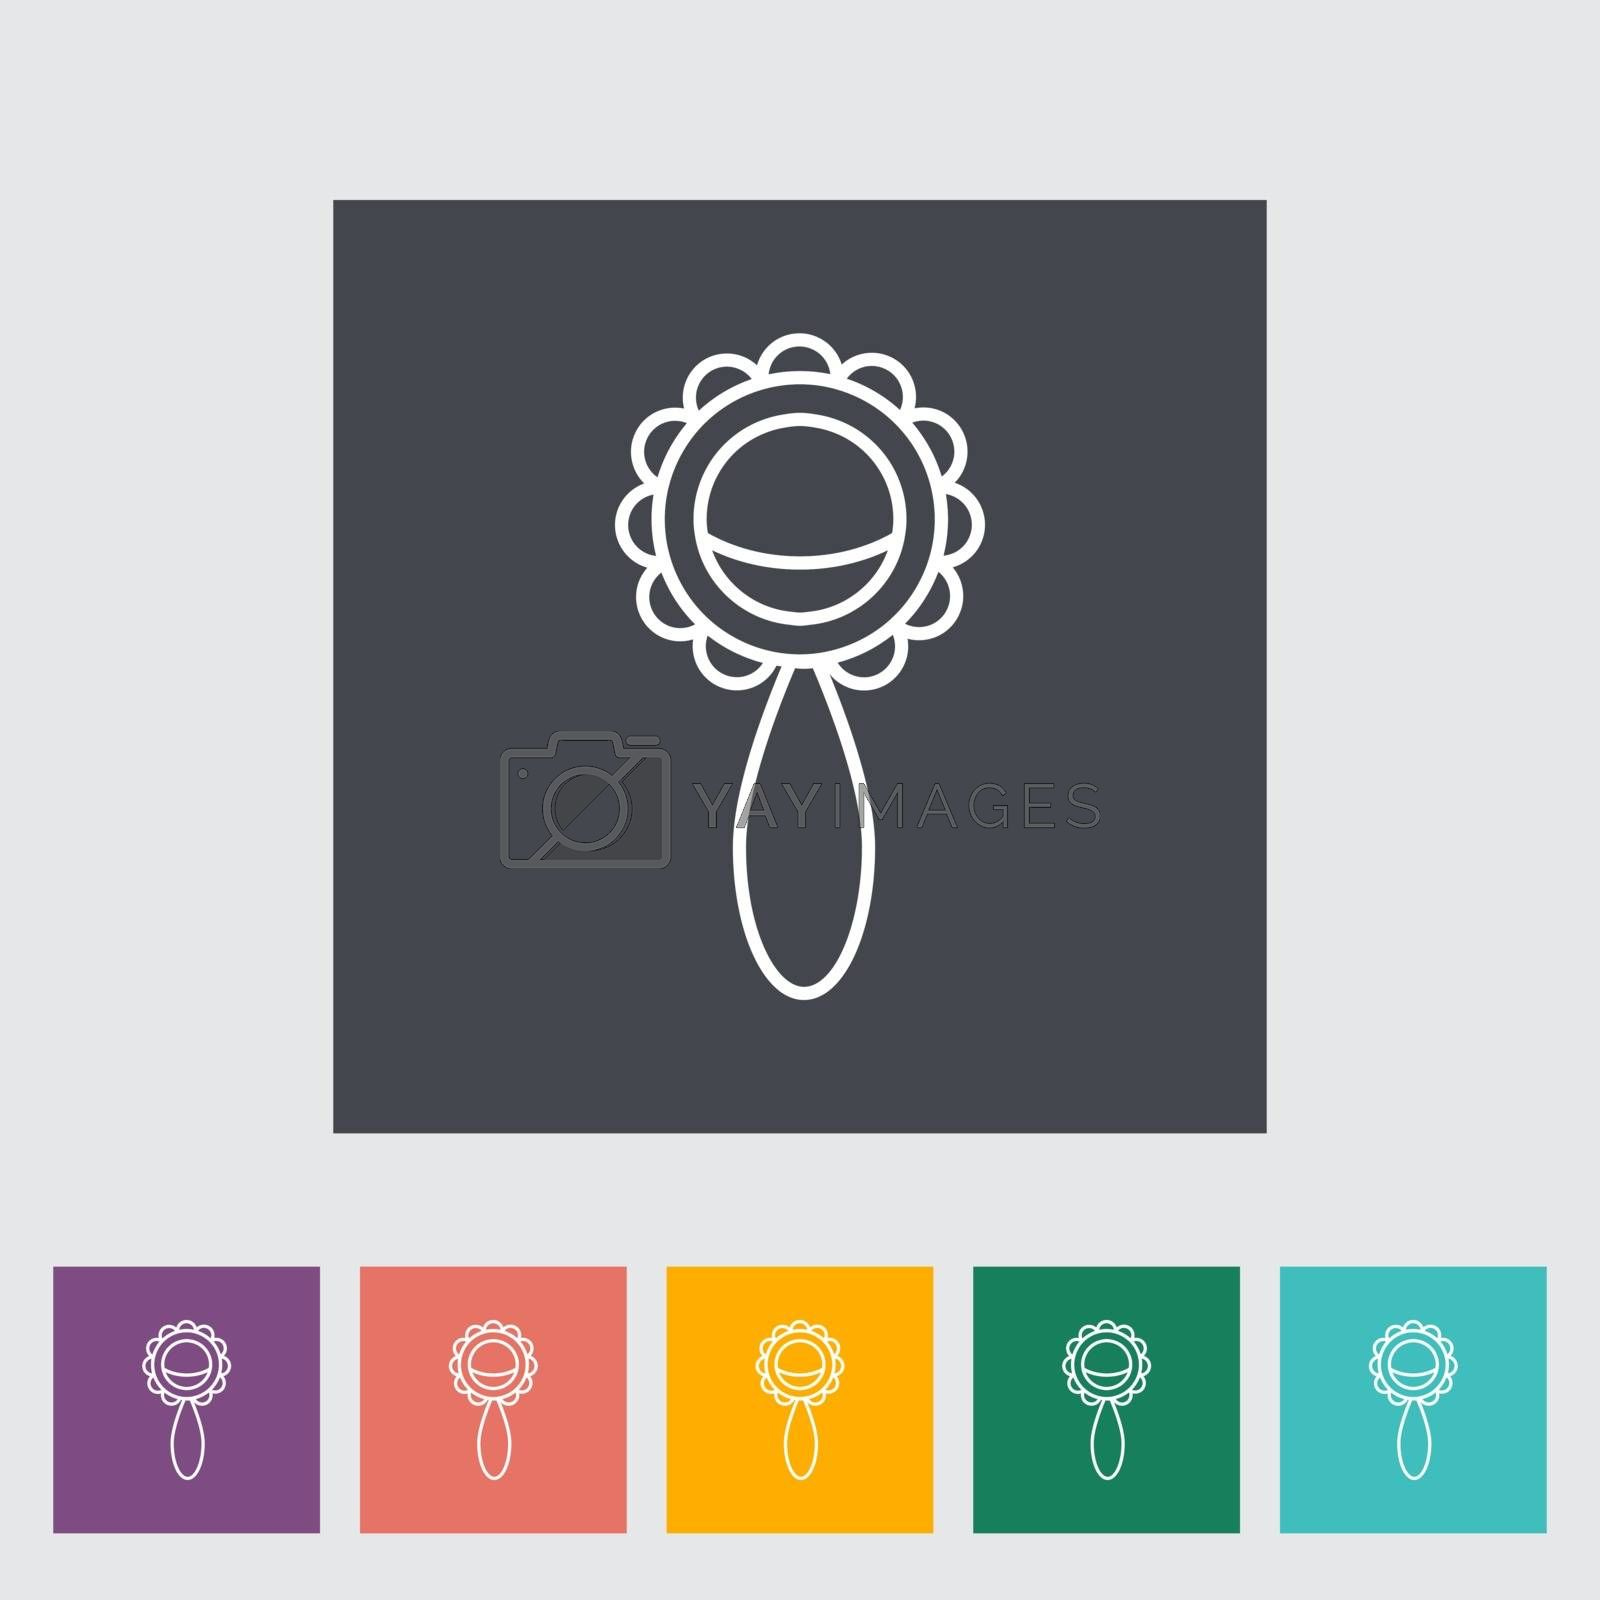 Rattle thin line flat vector related icon set for web and mobile applications. It can be used as - logo, pictogram, icon, infographic element. Vector Illustration.